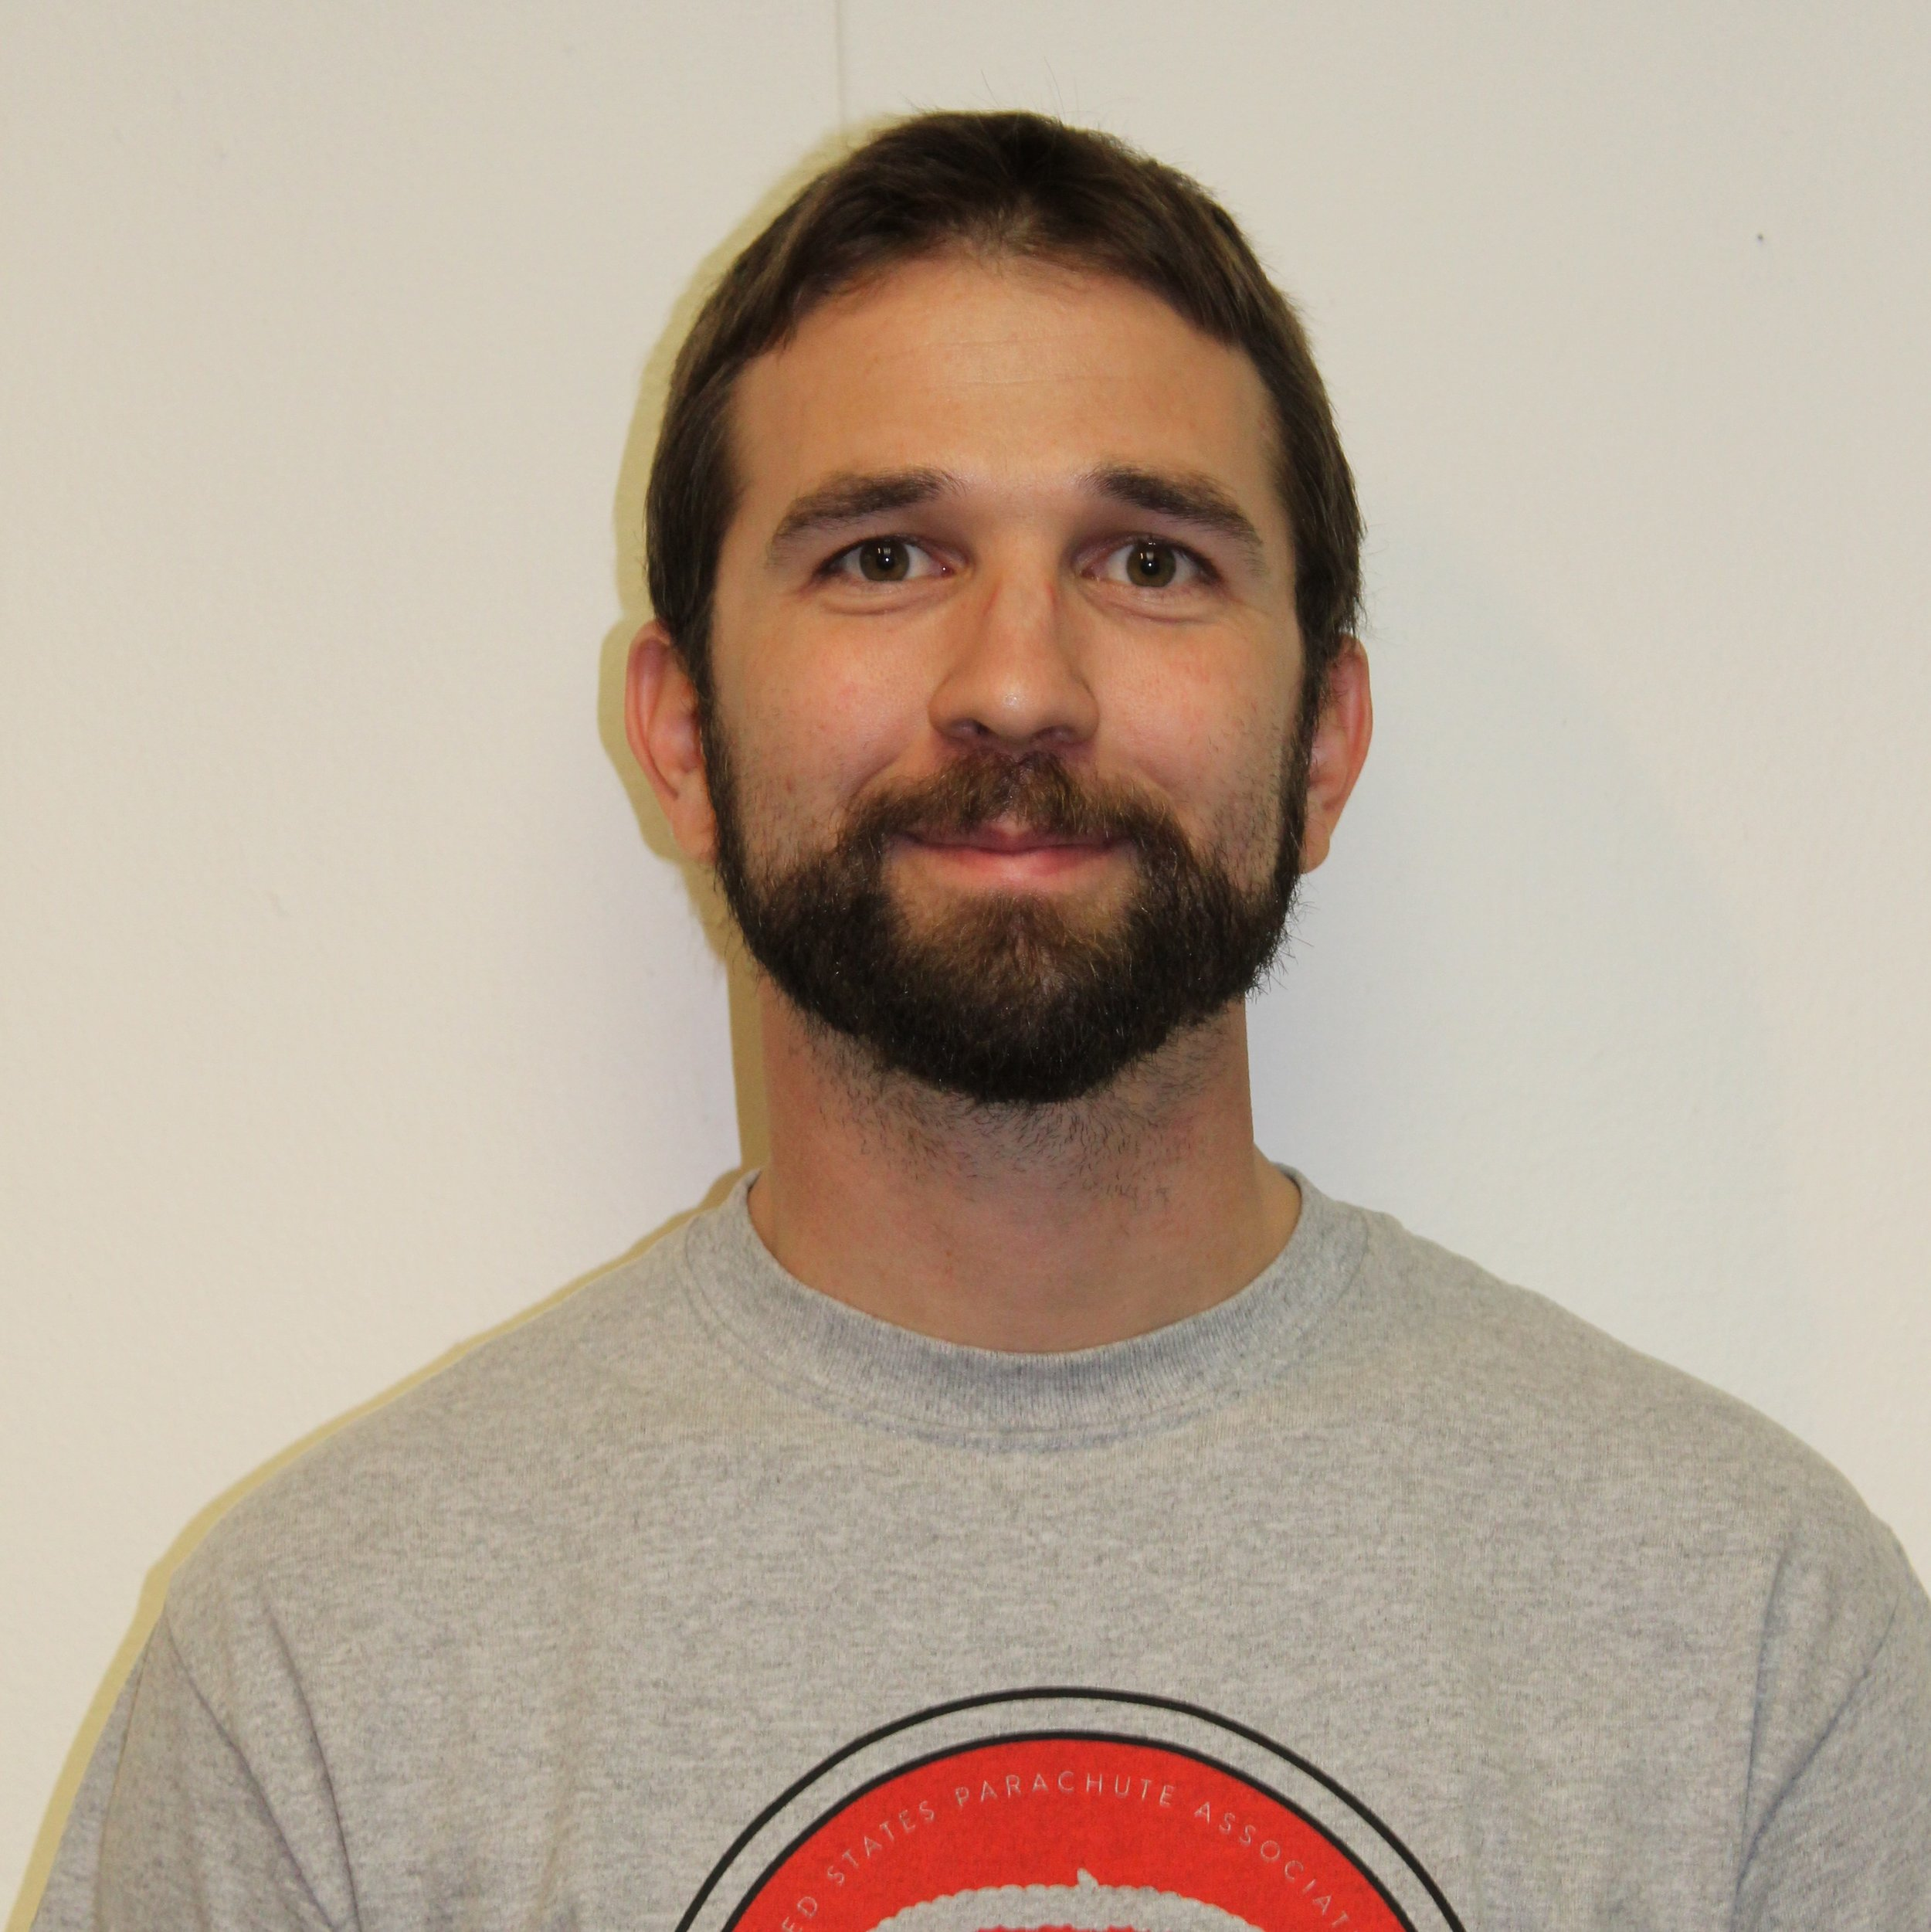 Brandon Cawood - Tandem Instructor and drop zone ownerJumps: 2000+Years in sport: 13 yearsD license 33466Ratings: static line, IAD, Tandem, FAA senior rigger, and Pro Rated